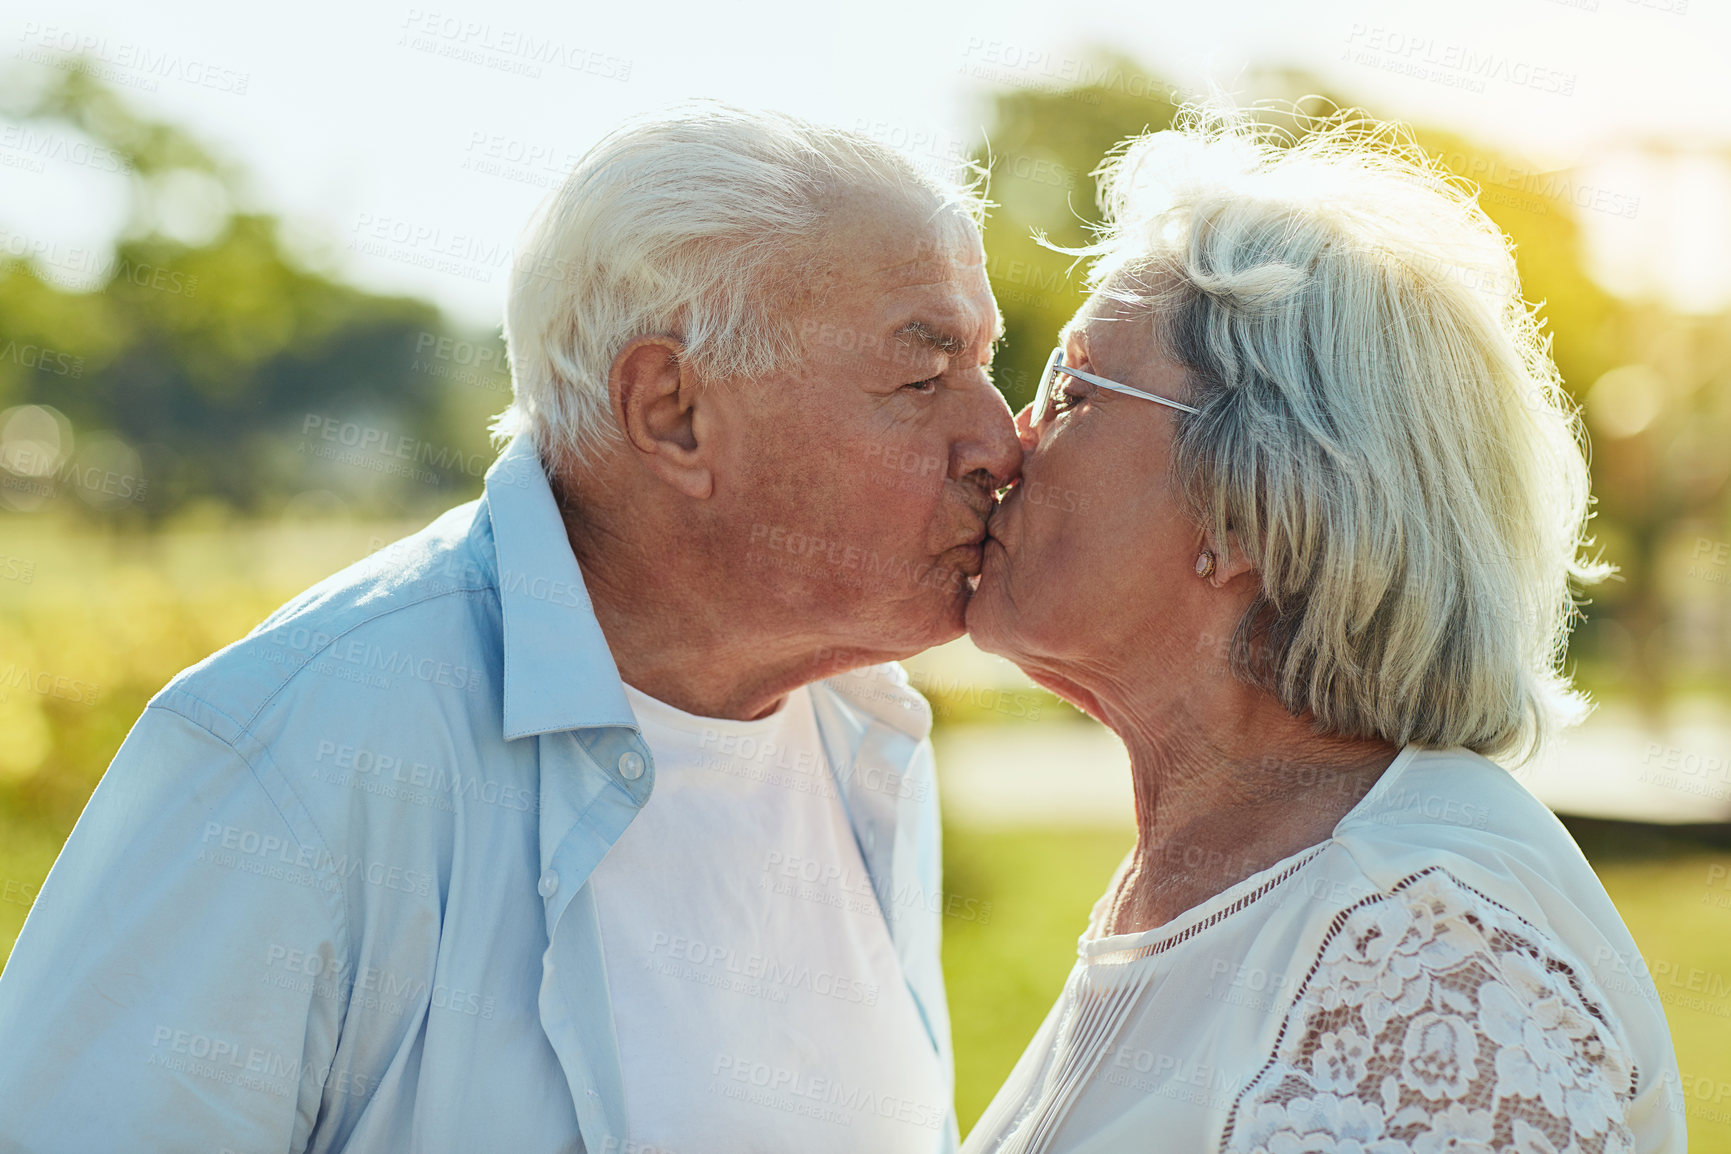 Buy stock photo Shot of a happy senior couple sharing a loving kiss in the park